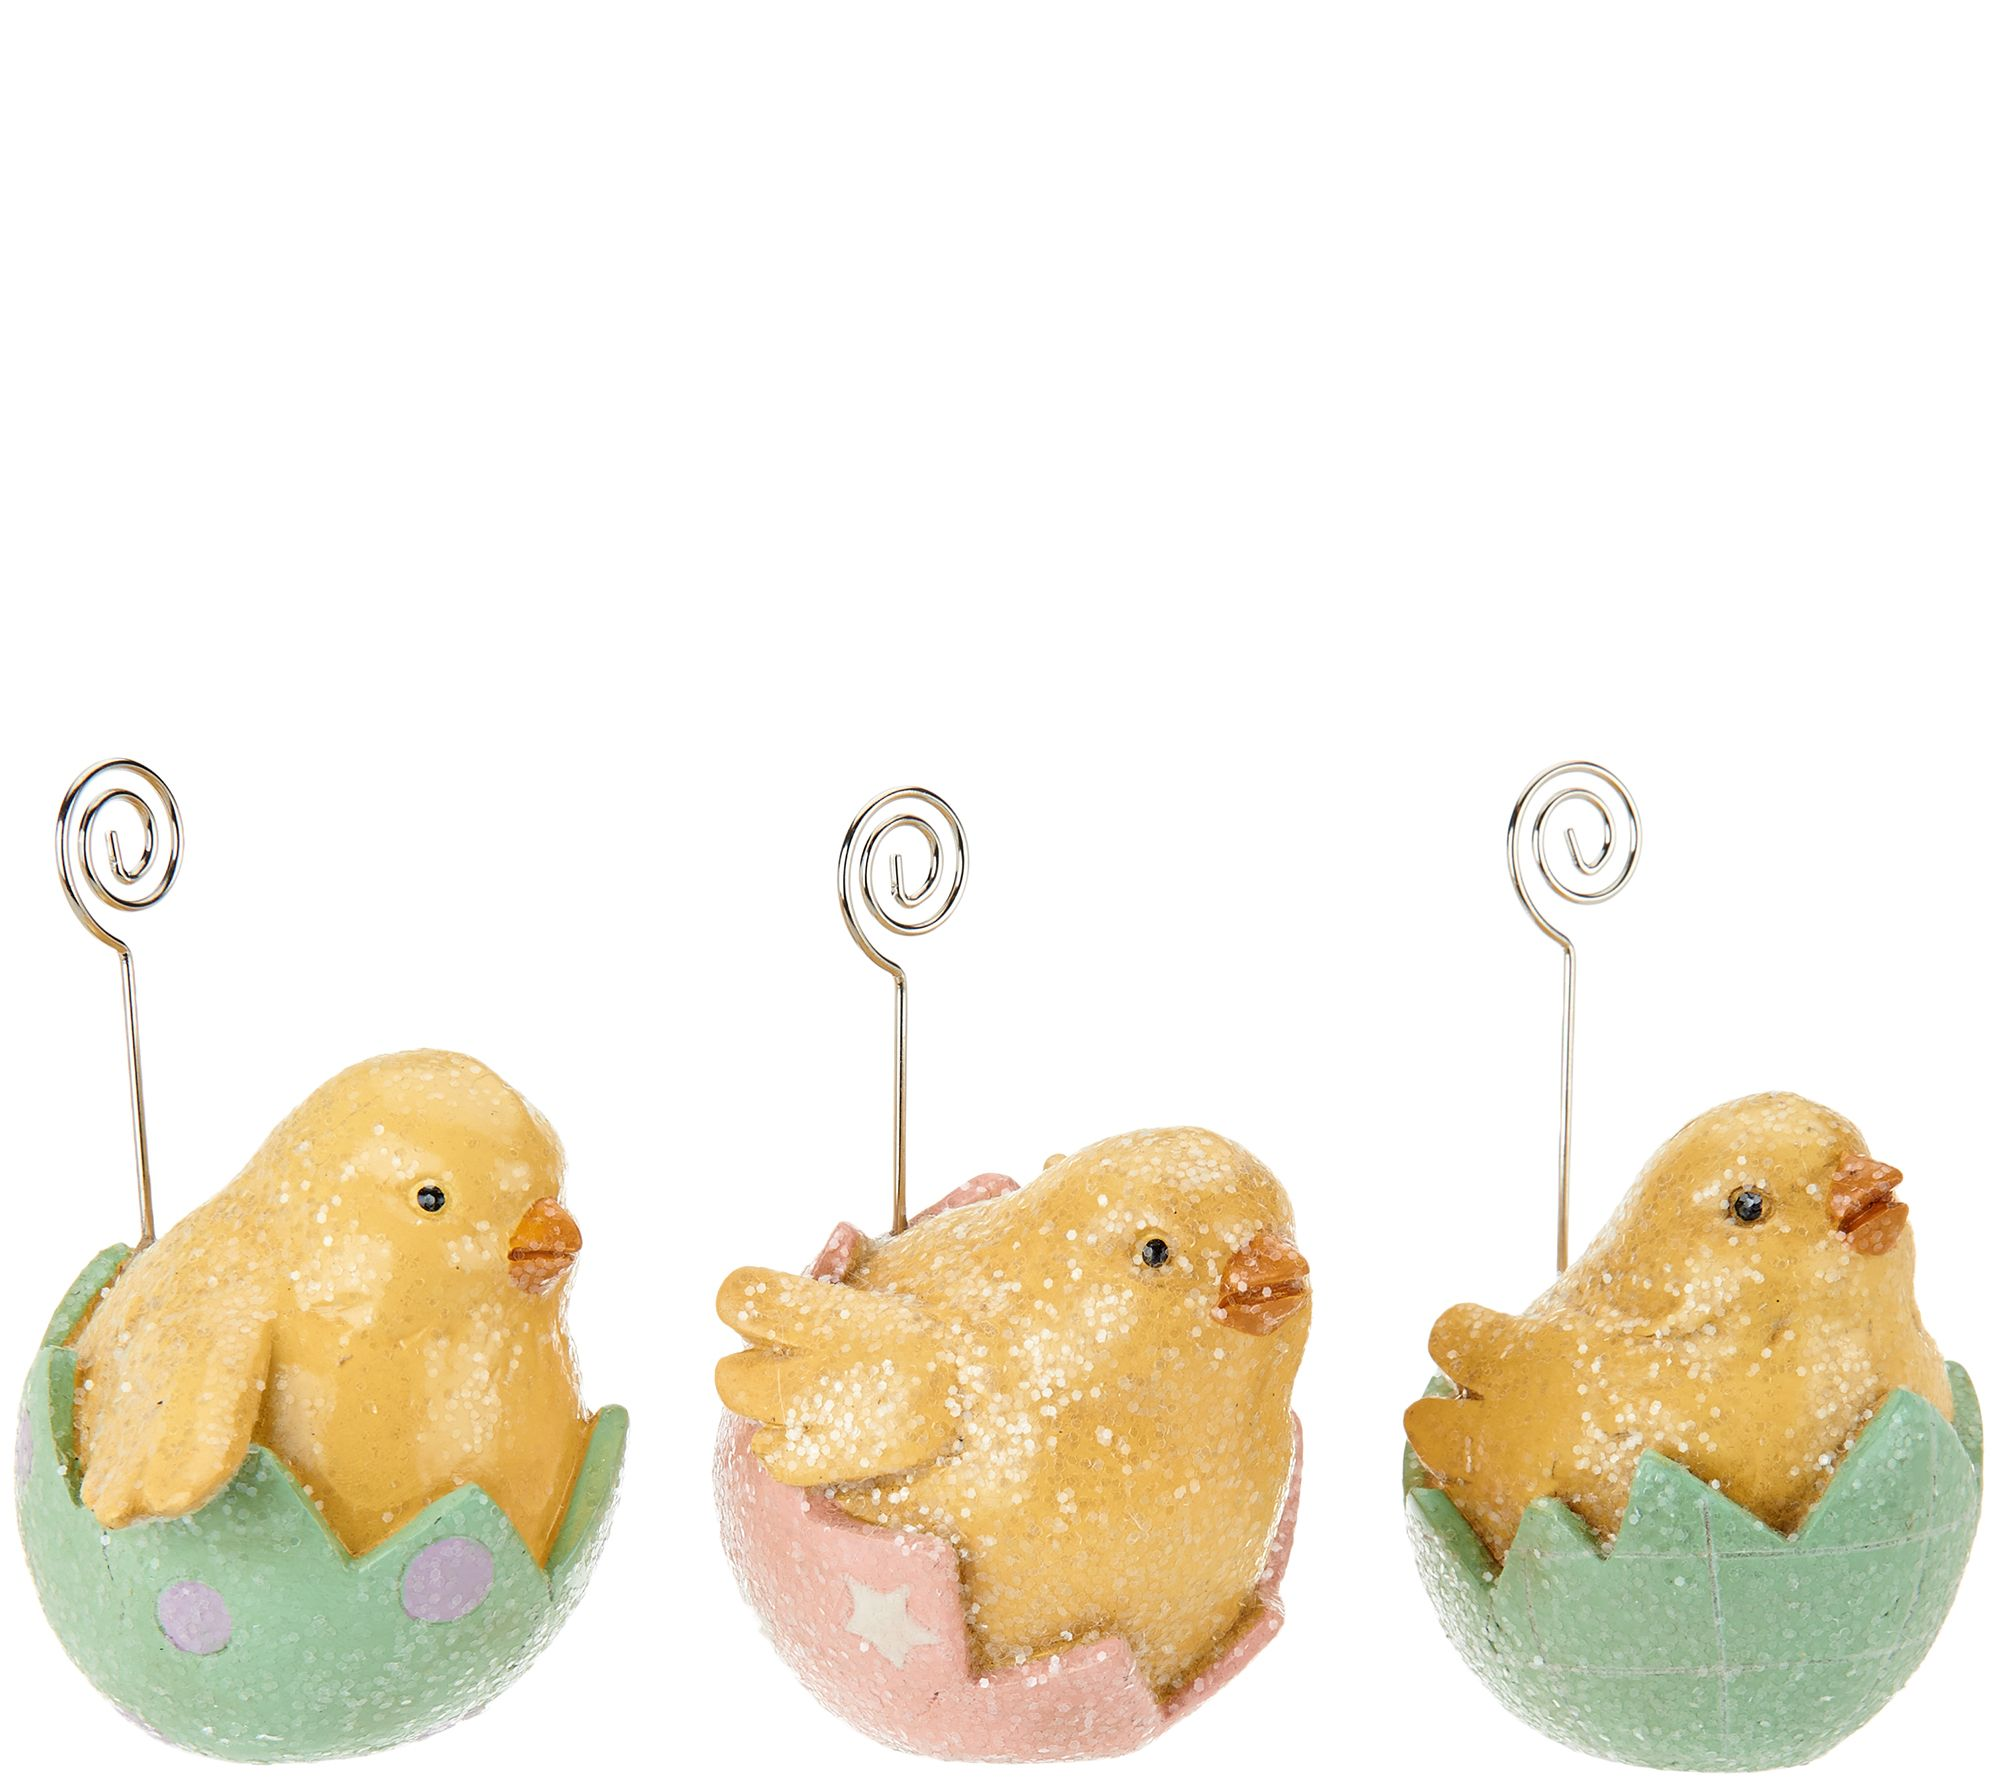 Set of 3 Bunny or Chick Placecard Holders by Valerie